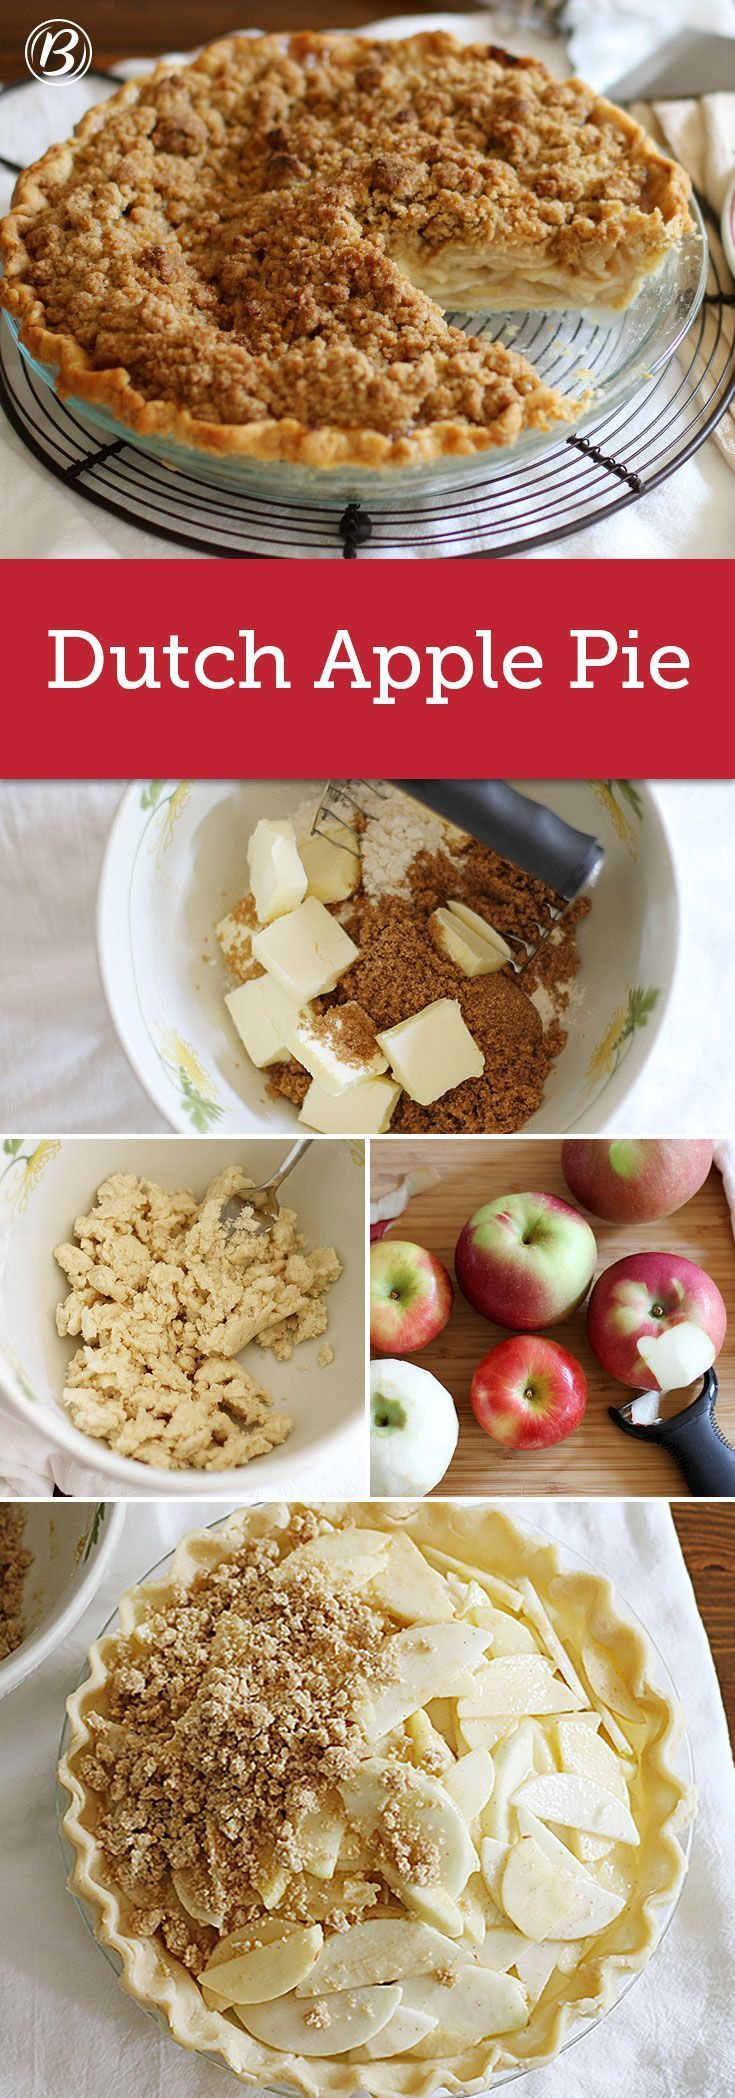 Celebrate apple season and bake up this classic crumble-topped apple pie today. Planning ahead for Thanksgiving? This pie will keep frozen, wrapped in plastic wrap and then again in foil, for up to 3 months.